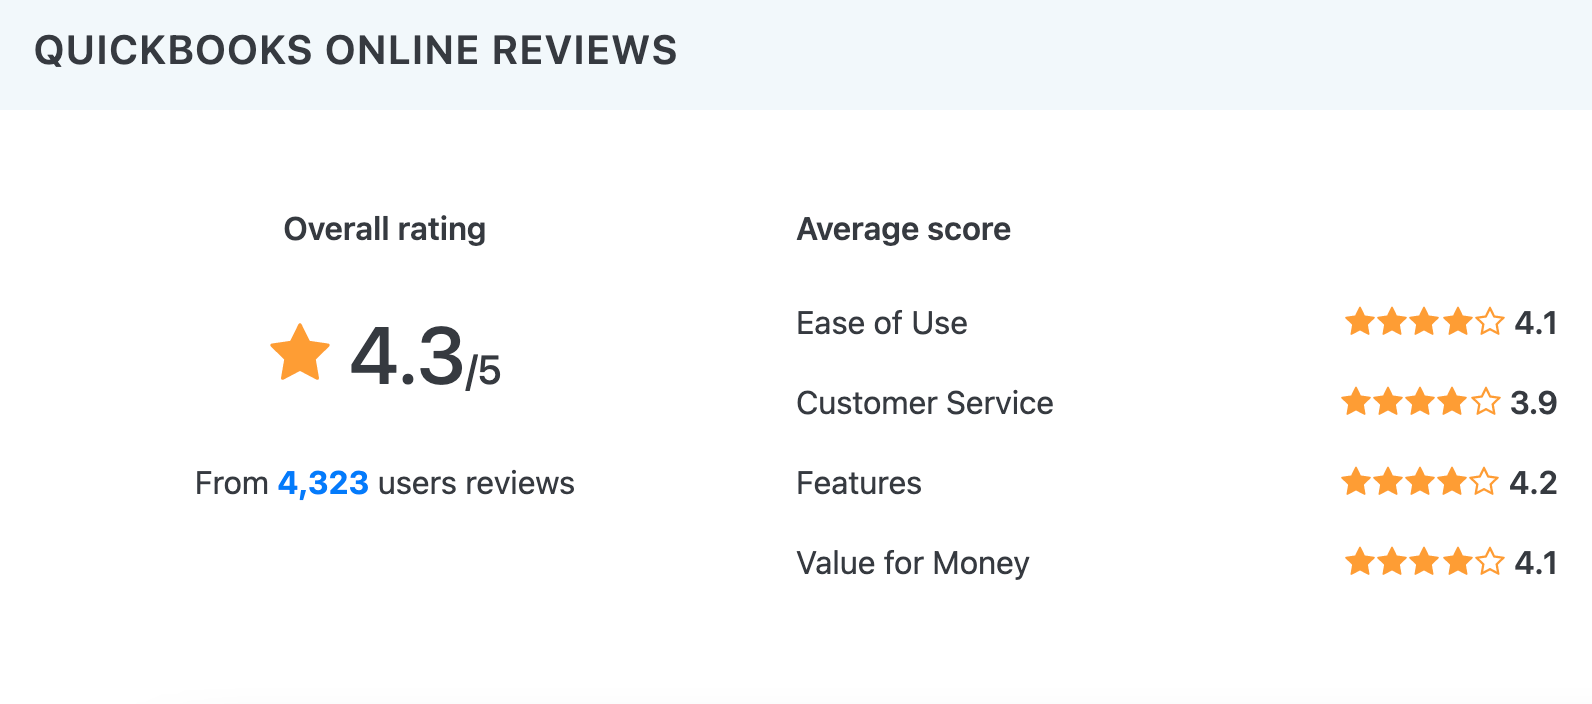 Quickbooks reviews from Capterra